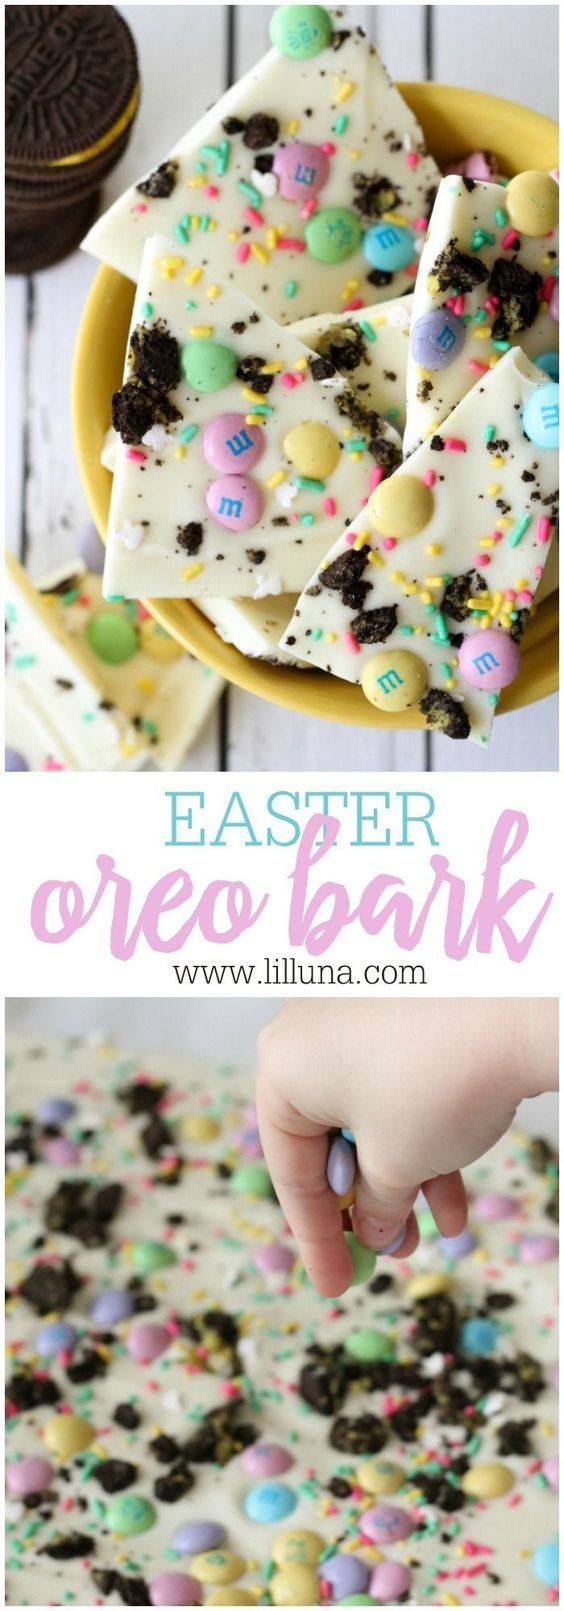 Easter Oreo Bark recipe - so festive, delicious and only takes 5 minutes to put together!